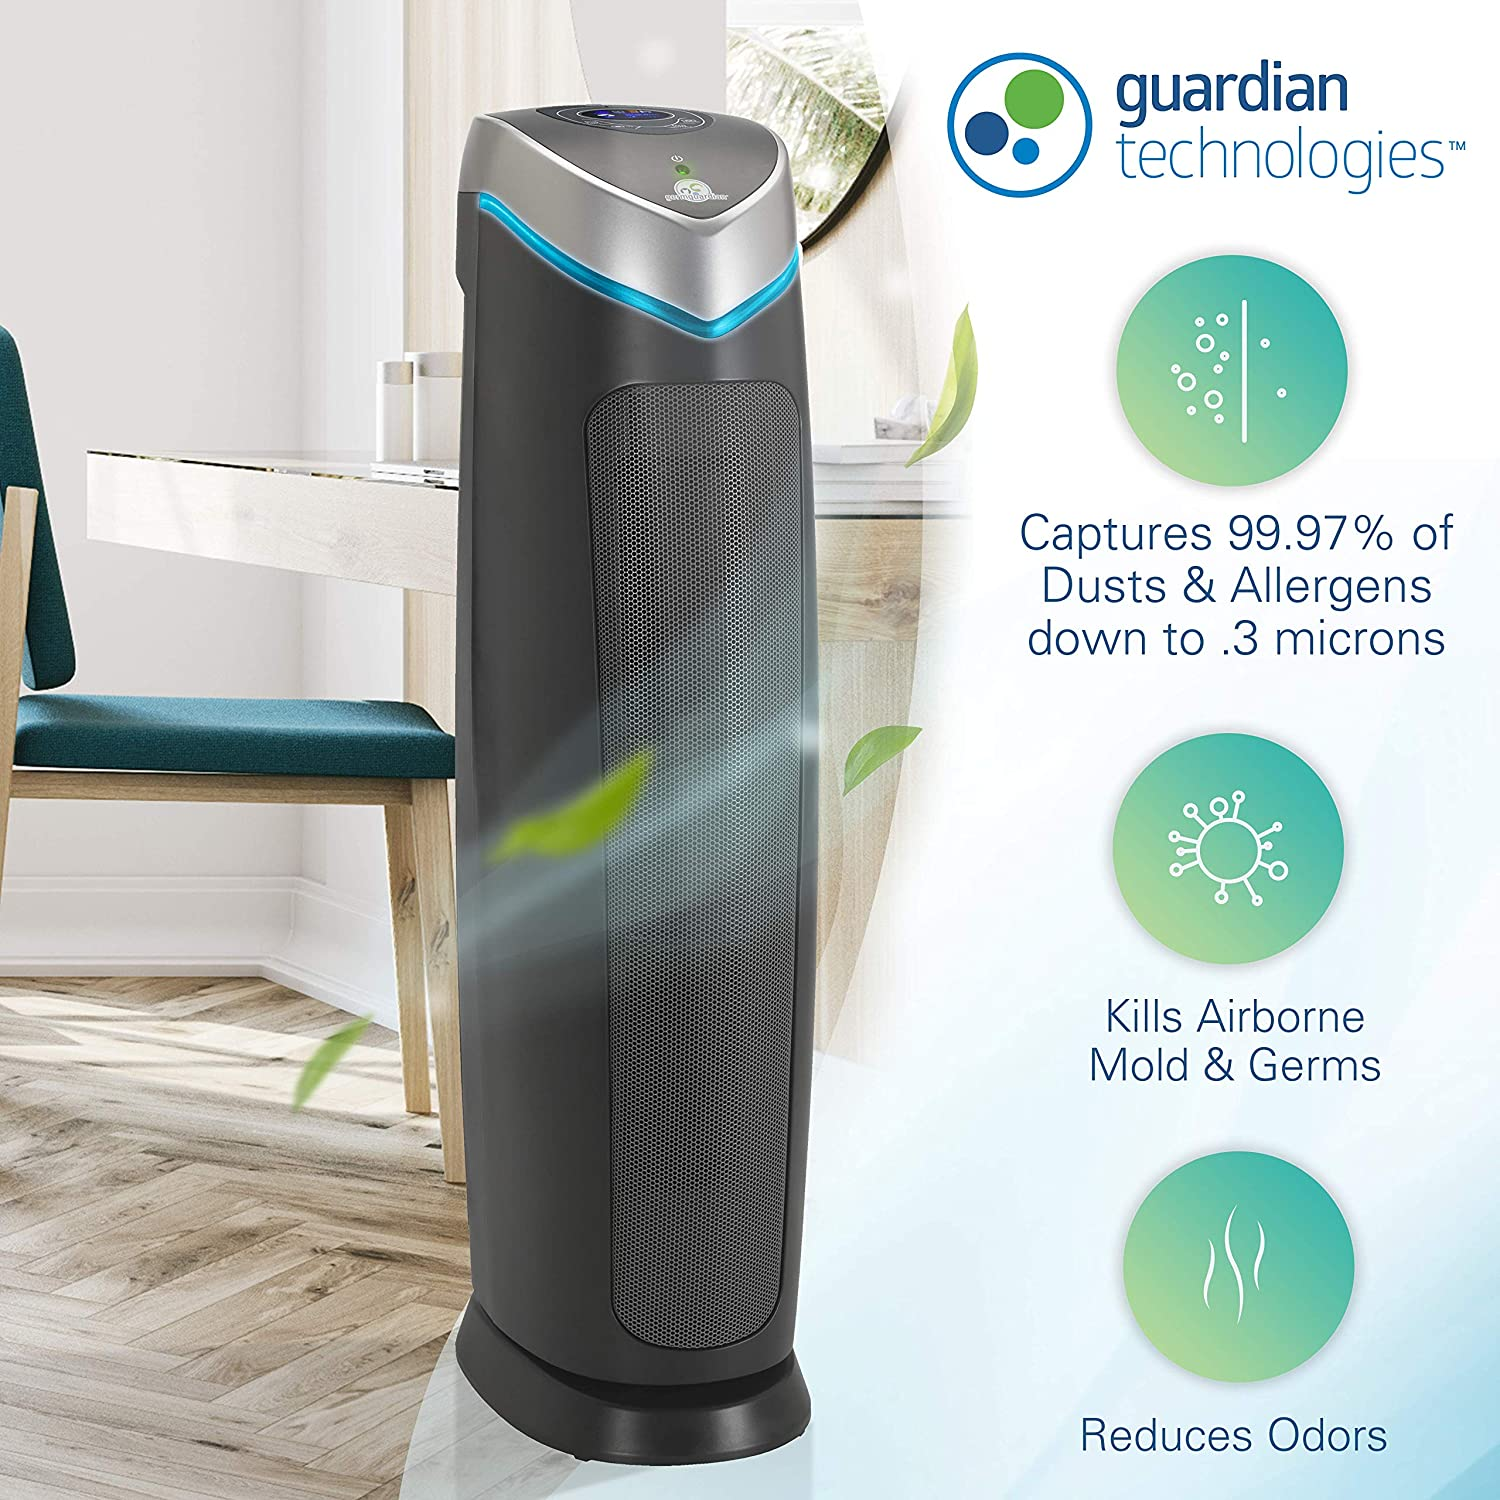 Germ Guardian AC5250PT 28 3-in-1 True HEPA Filter Air Purifier for Home and Pets, Large Rooms, UV-C Sanitizer, Filters Allergies, Smoke, Dust, Dander, Odors, 5-Yr Wty, GermGuardian, Grey